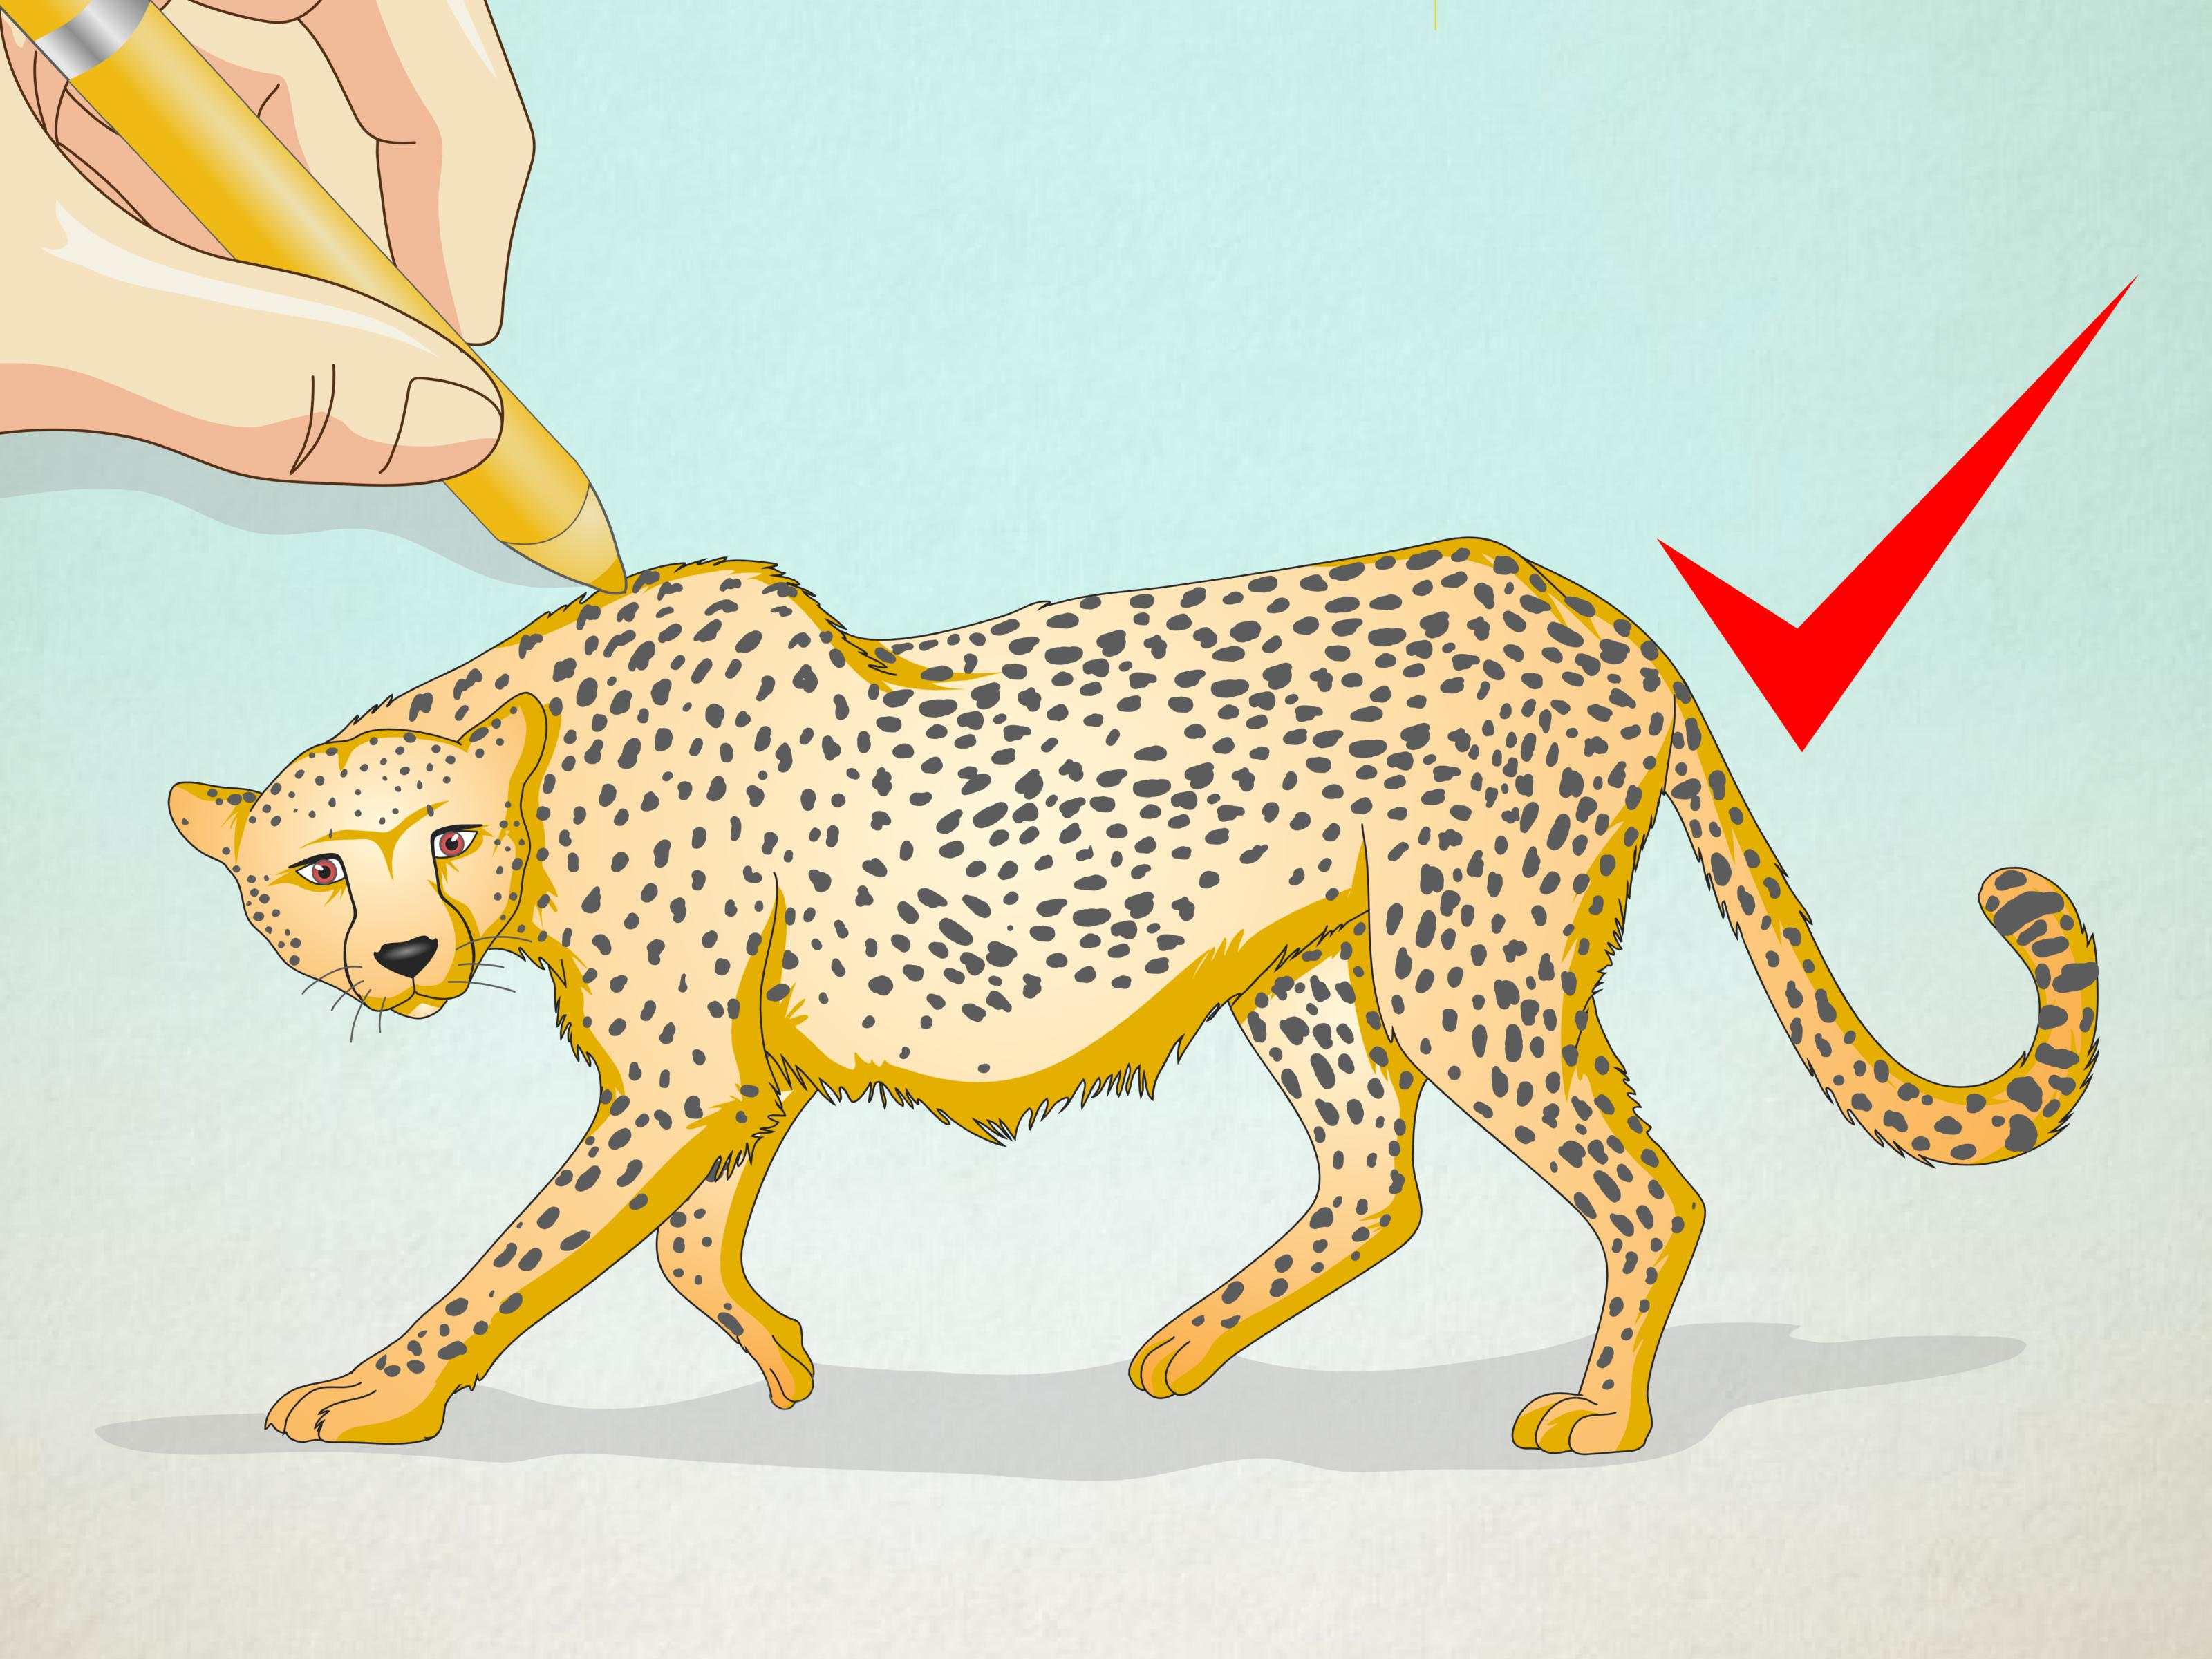 clipart transparent How to Draw a Cheetah